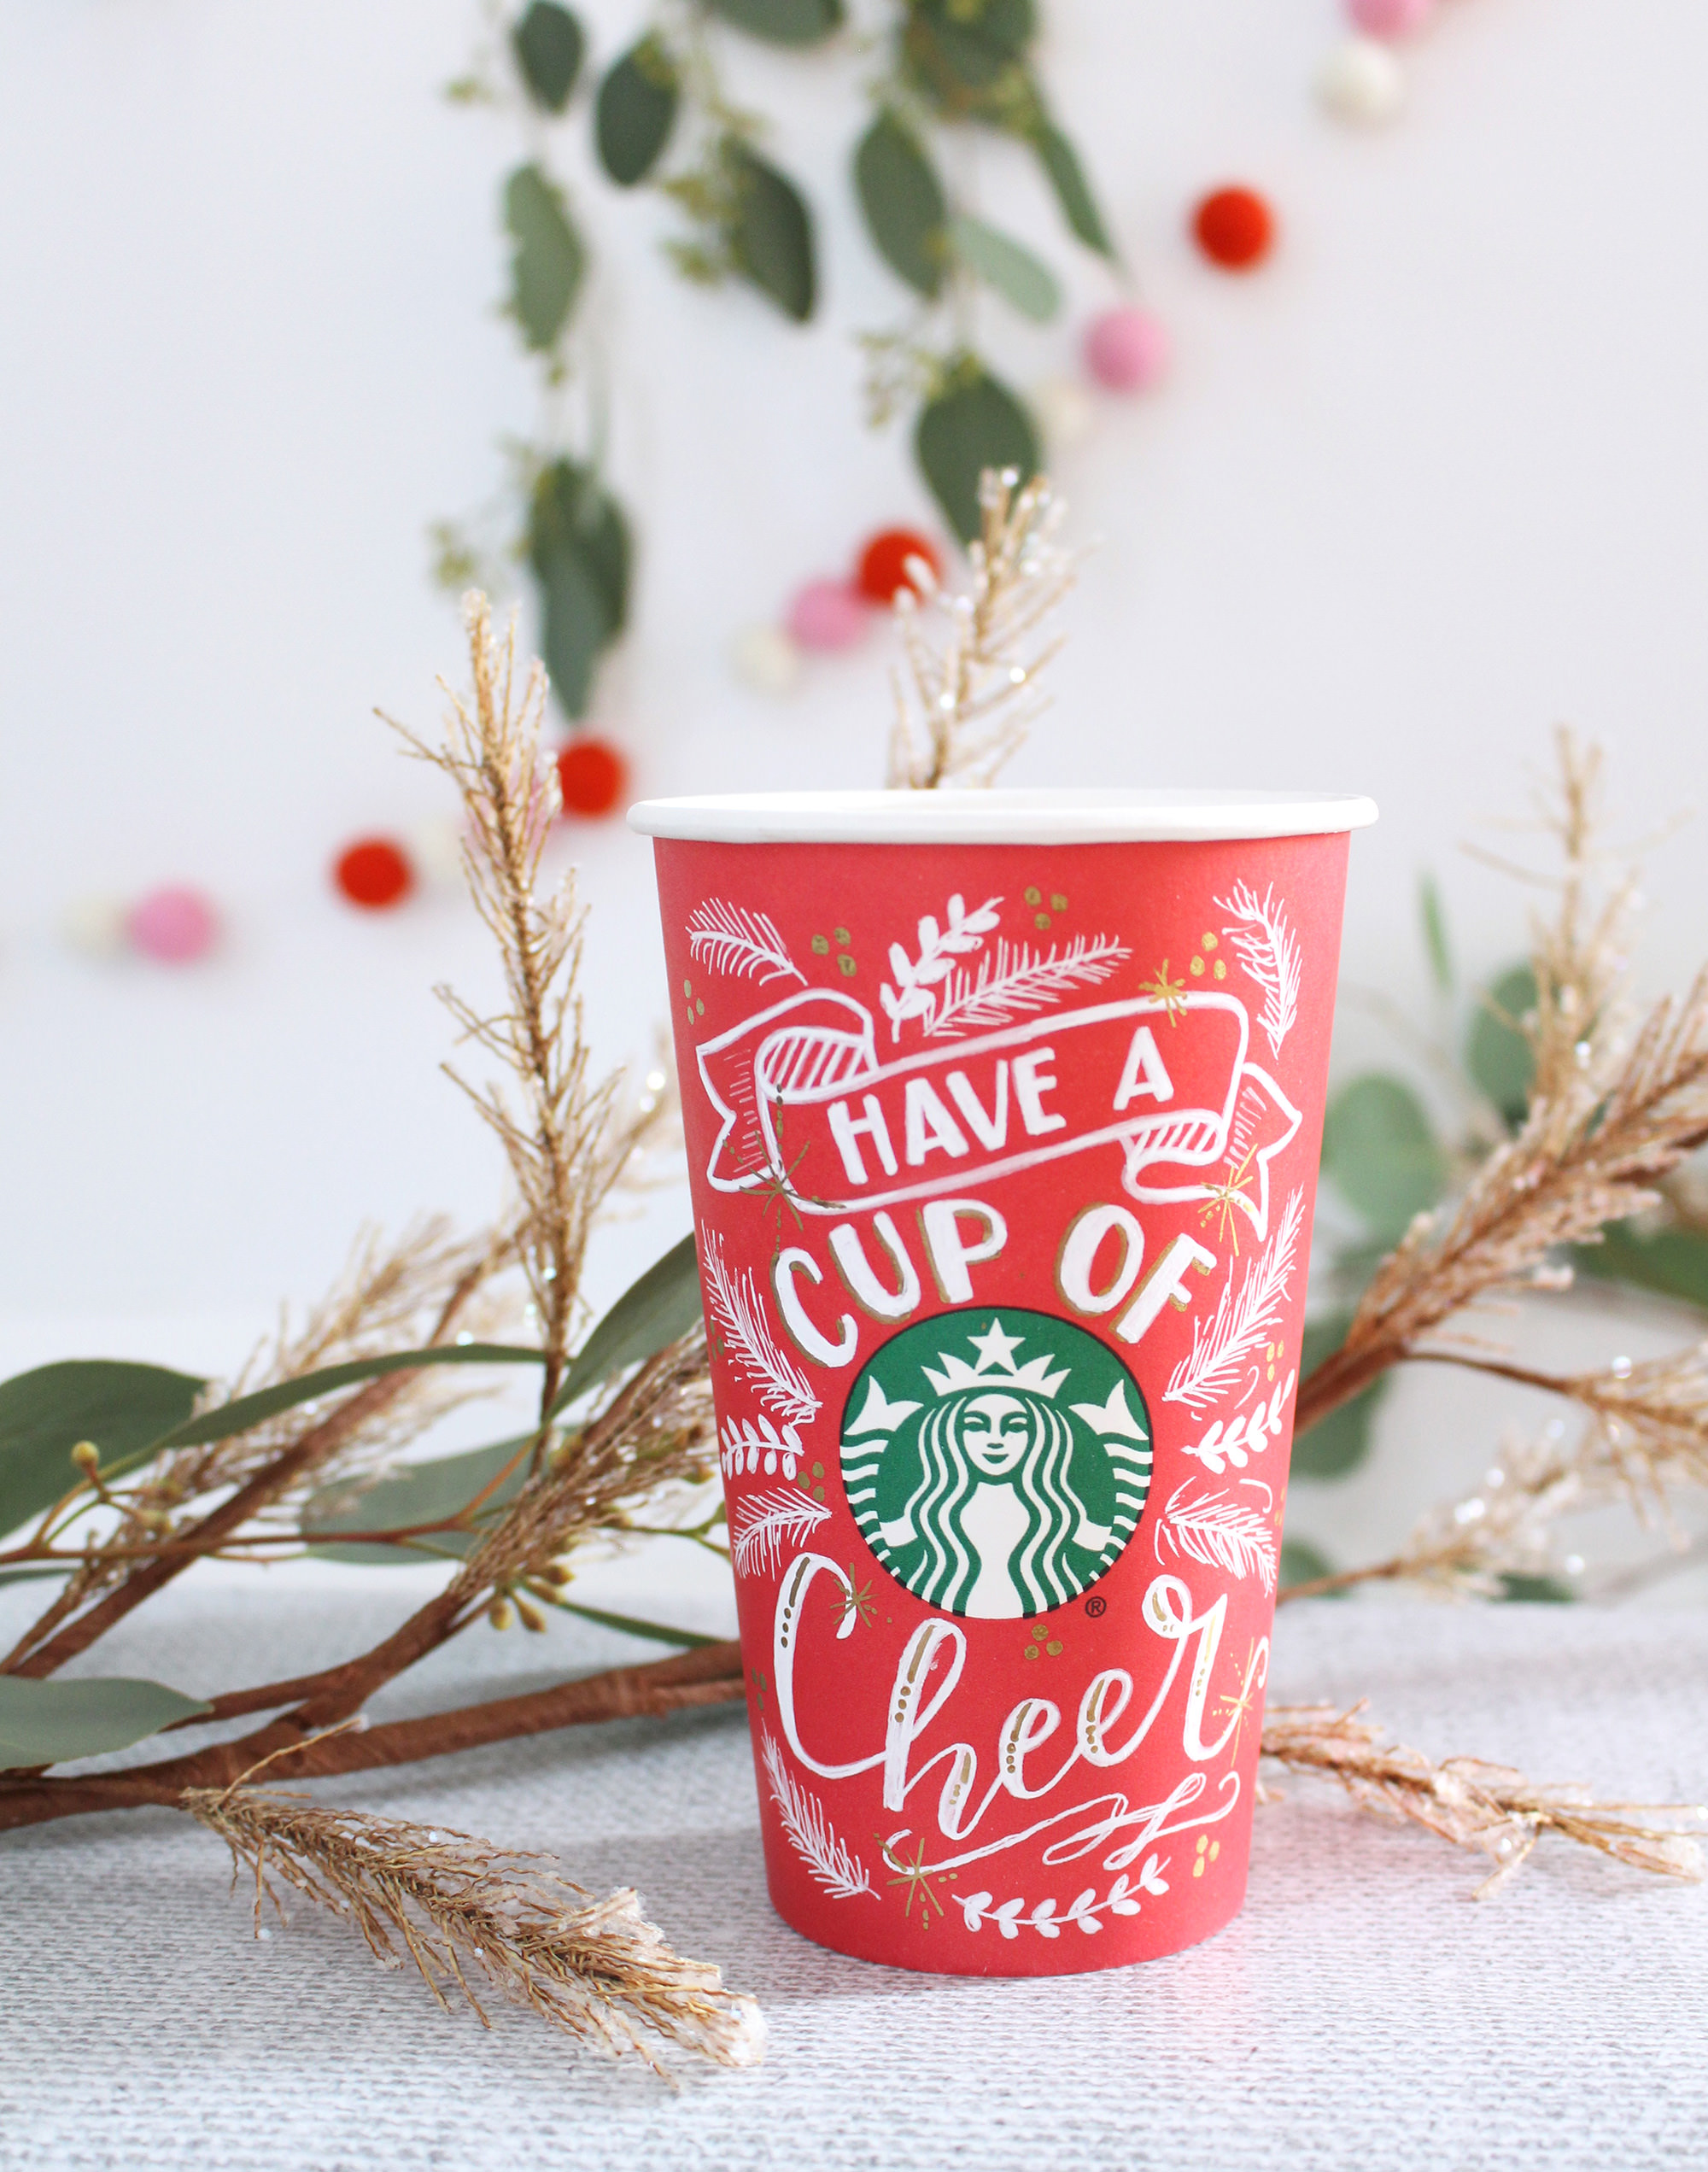 Starbucks is bringing back blank red cups on December 17th for you to add your own holiday flair! This cup was designed by Valerie McKeehan of Lily & Val.